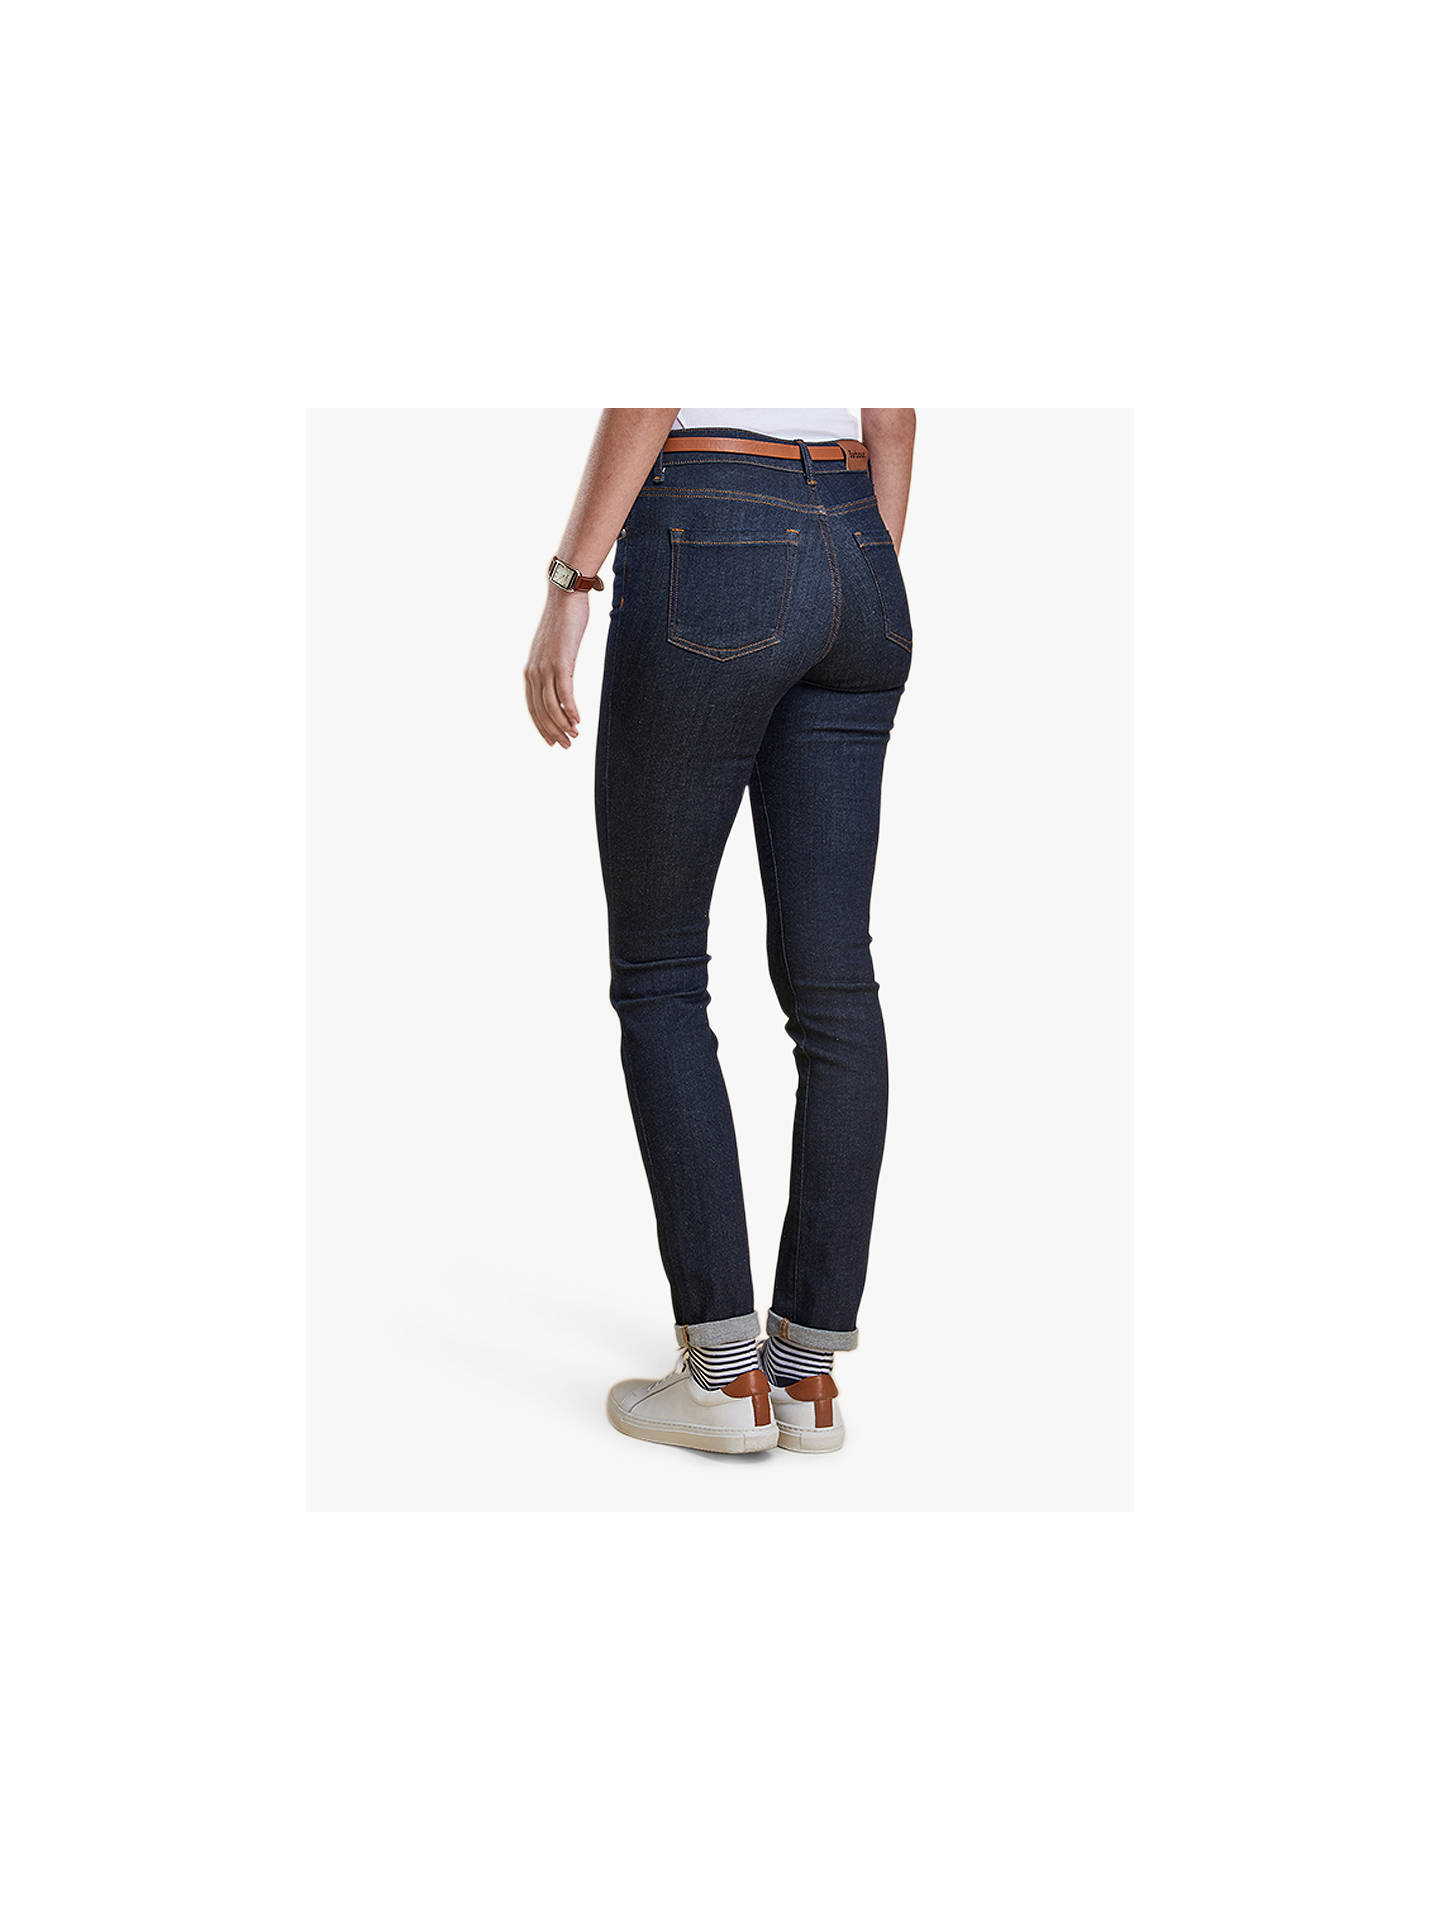 BuyBarbour Essential Slim Jeans, Rinse, 10 Online at johnlewis.com